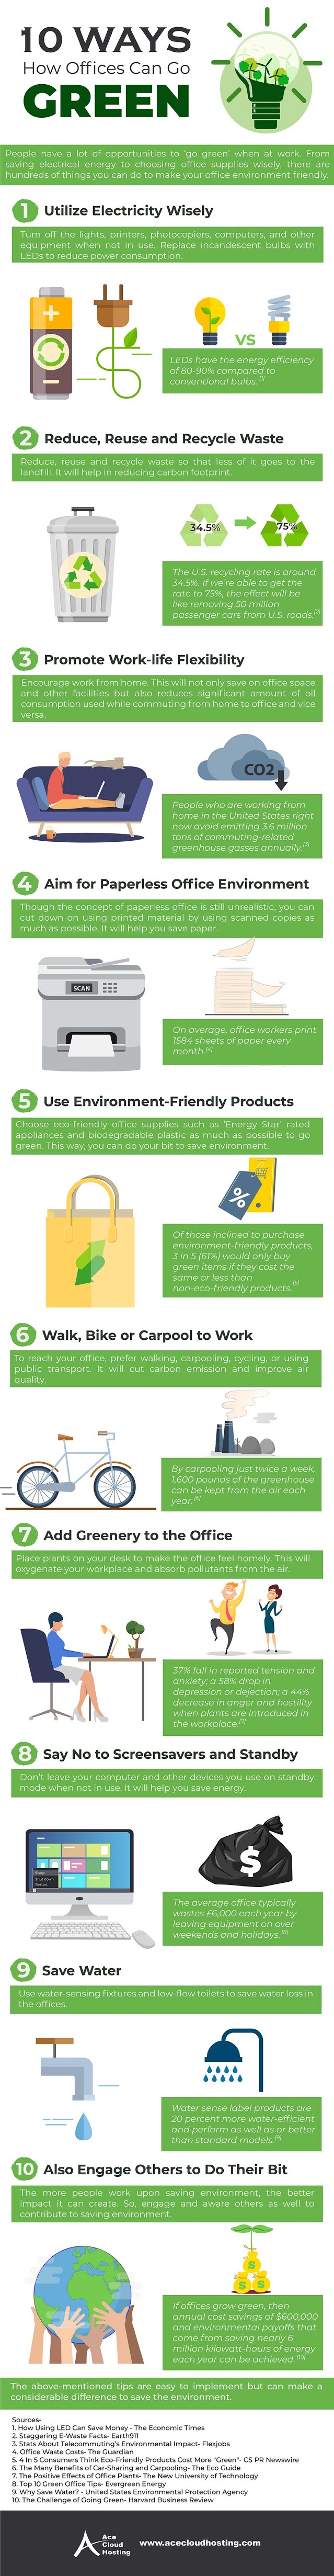 10 Ways How Offices Can Go Green #infographic